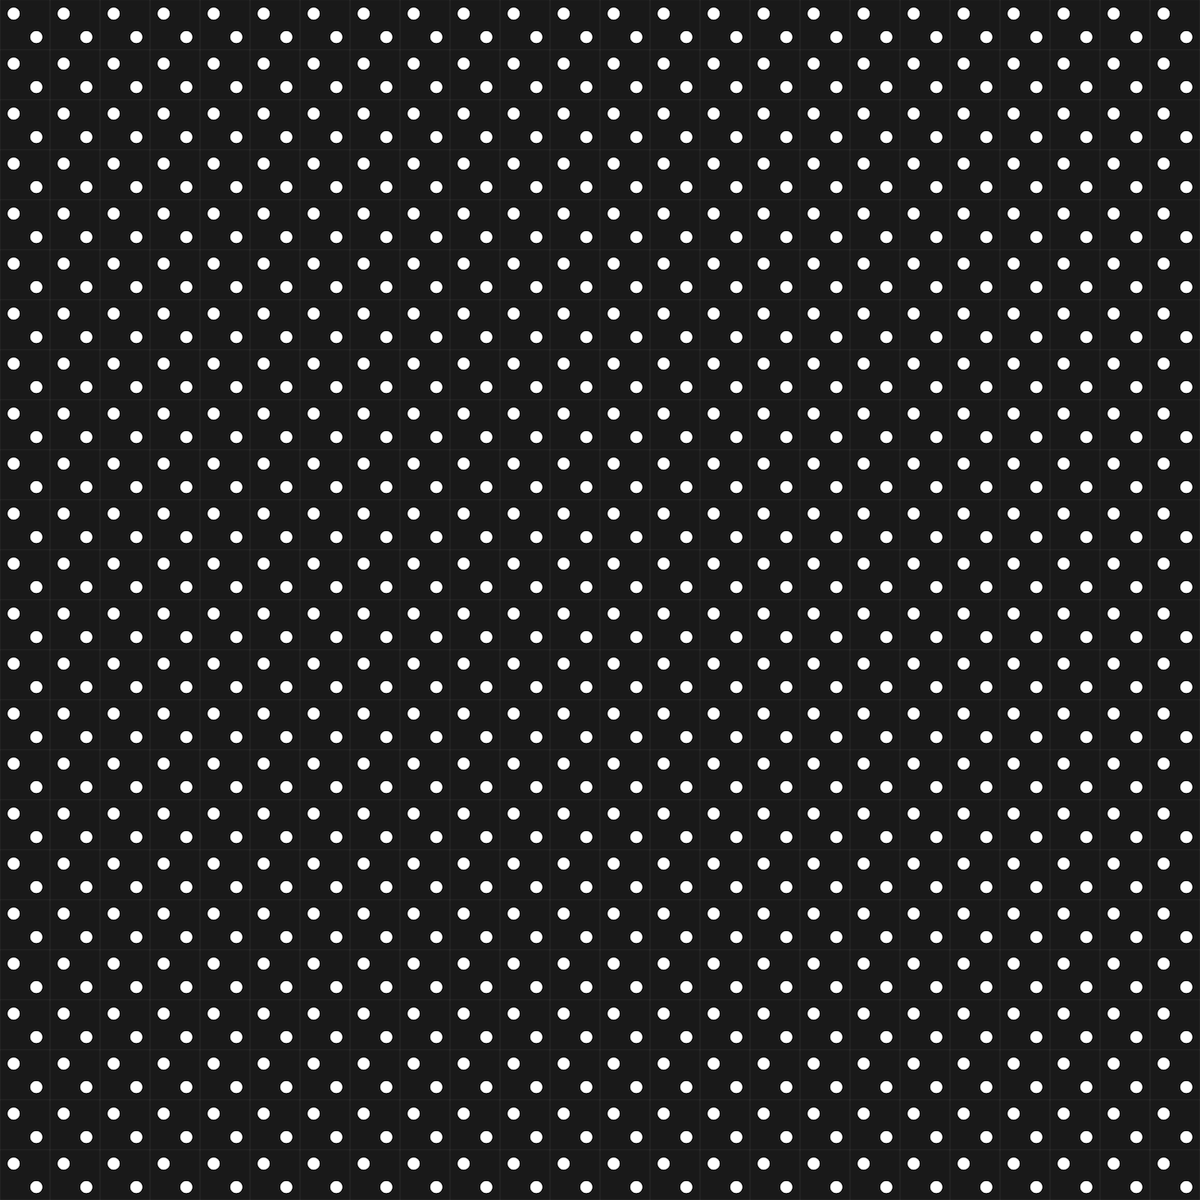 Png Und Clipart Free Digital And Printable Png S And Scrapbooking Elements For Paper Crafting For Digital Scr White Scrapbook Background Patterns Polka Dots